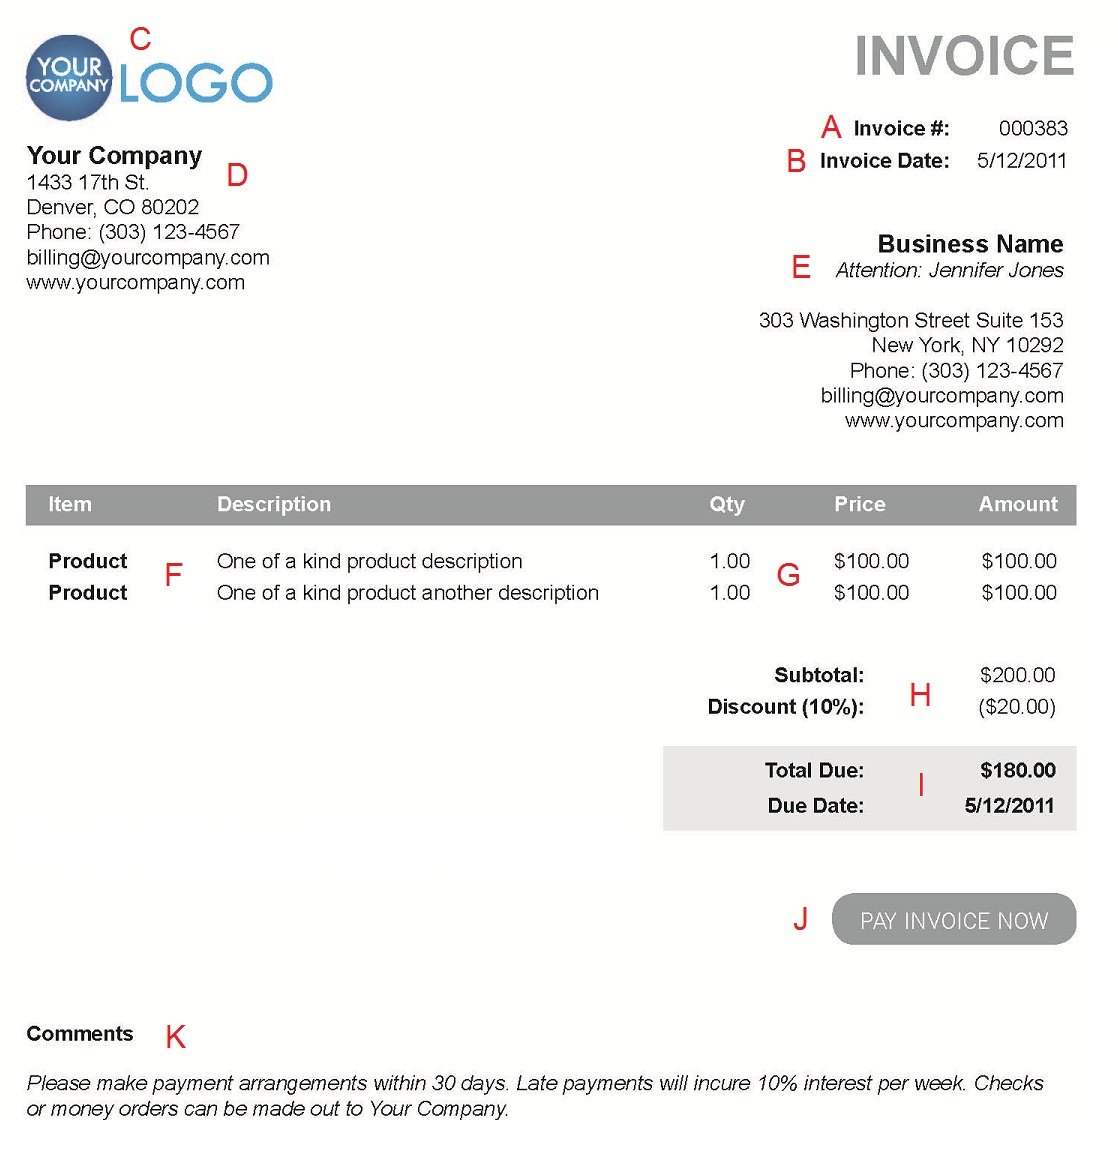 Coolmathgamesus  Marvellous The  Different Sections Of An Electronic Payment Invoice With Glamorous A  With Archaic Invoice Machine Also Outstanding Invoices In Addition Create Invoices And Sales Invoice Definition As Well As Pdf Invoice Additionally How To Invoice On Paypal From Paysimplecom With Coolmathgamesus  Glamorous The  Different Sections Of An Electronic Payment Invoice With Archaic A  And Marvellous Invoice Machine Also Outstanding Invoices In Addition Create Invoices From Paysimplecom